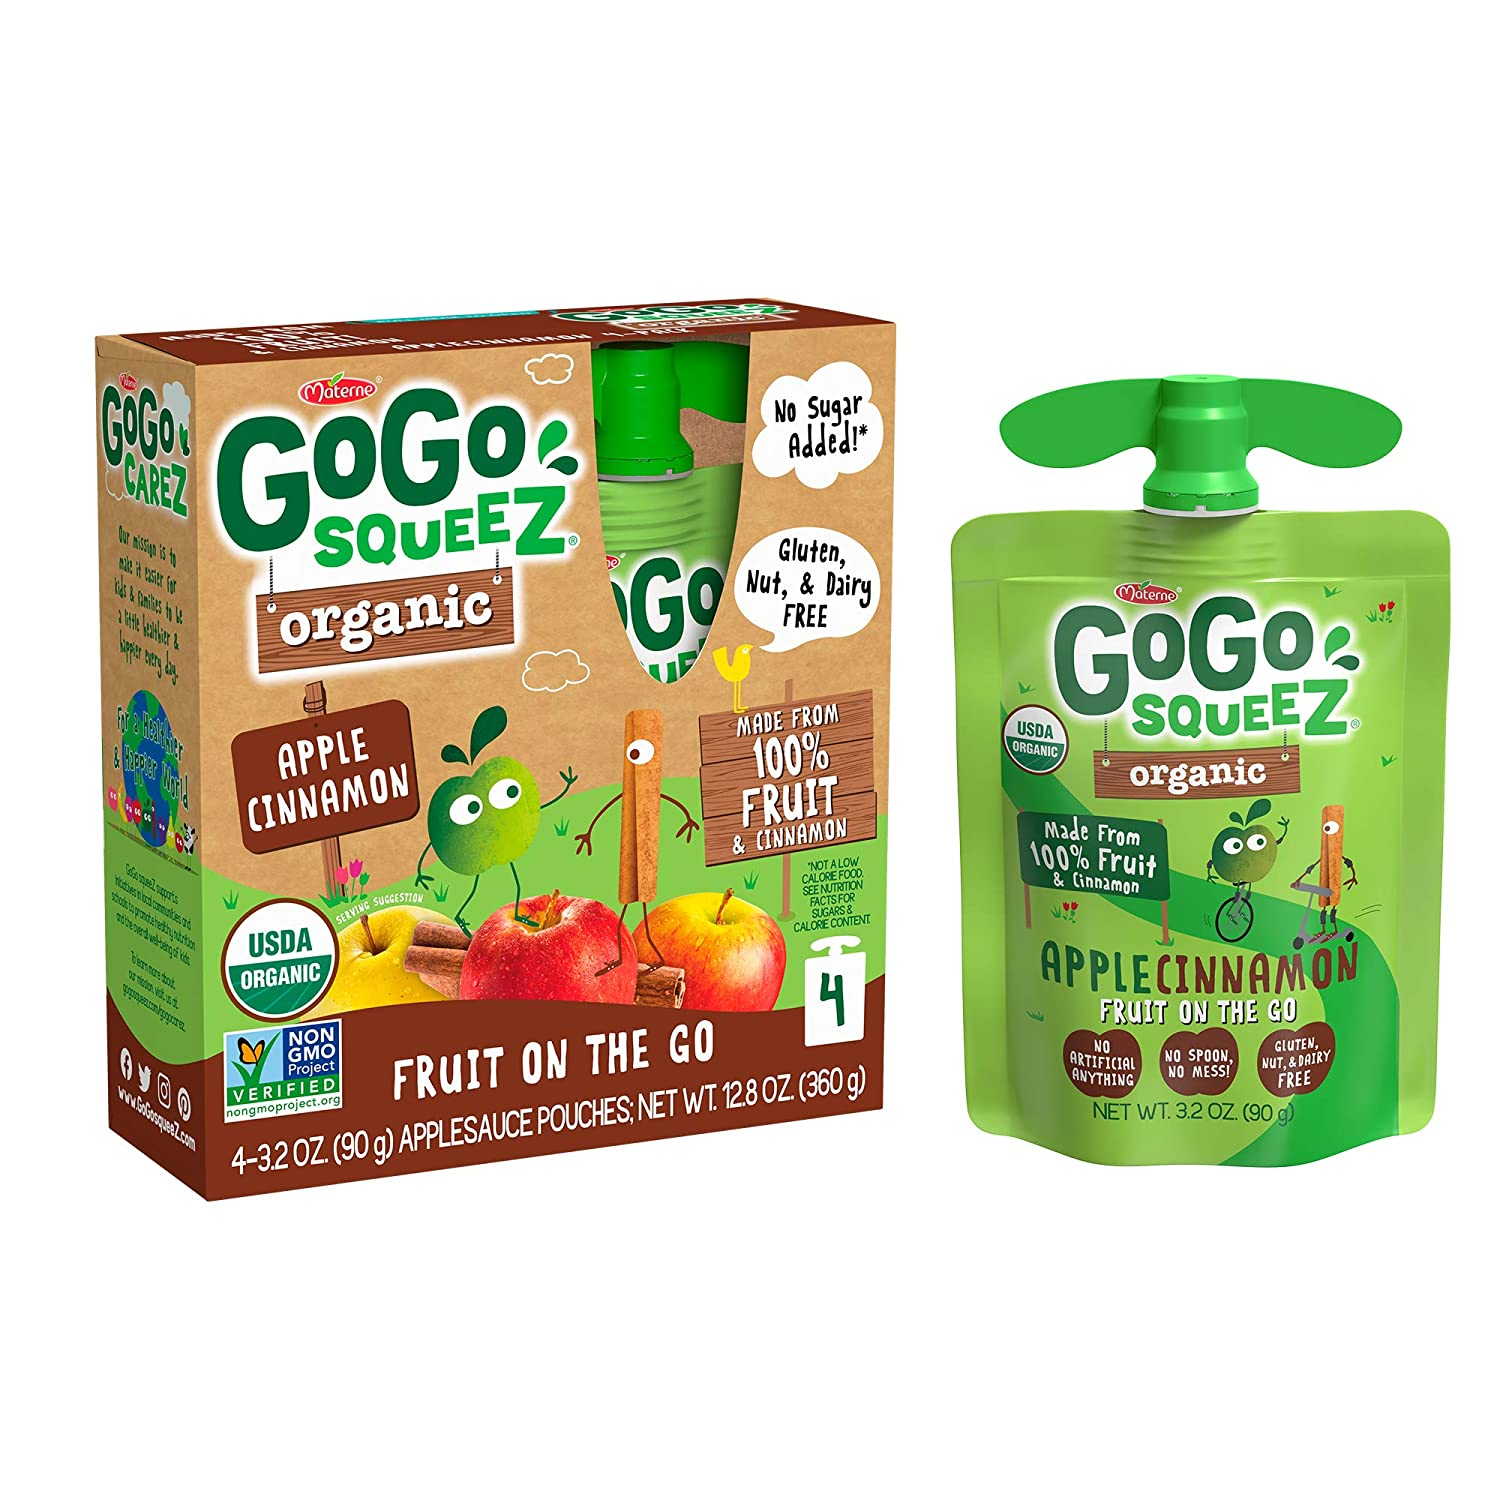 GoGo squeeZ Organic Applesauce, Apple Cinnamon, 3.2 Ounce (4 Pouches), Gluten Free, Vegan Friendly, Unsweetened Applesauce, Recloseable, BPA Free Pouches